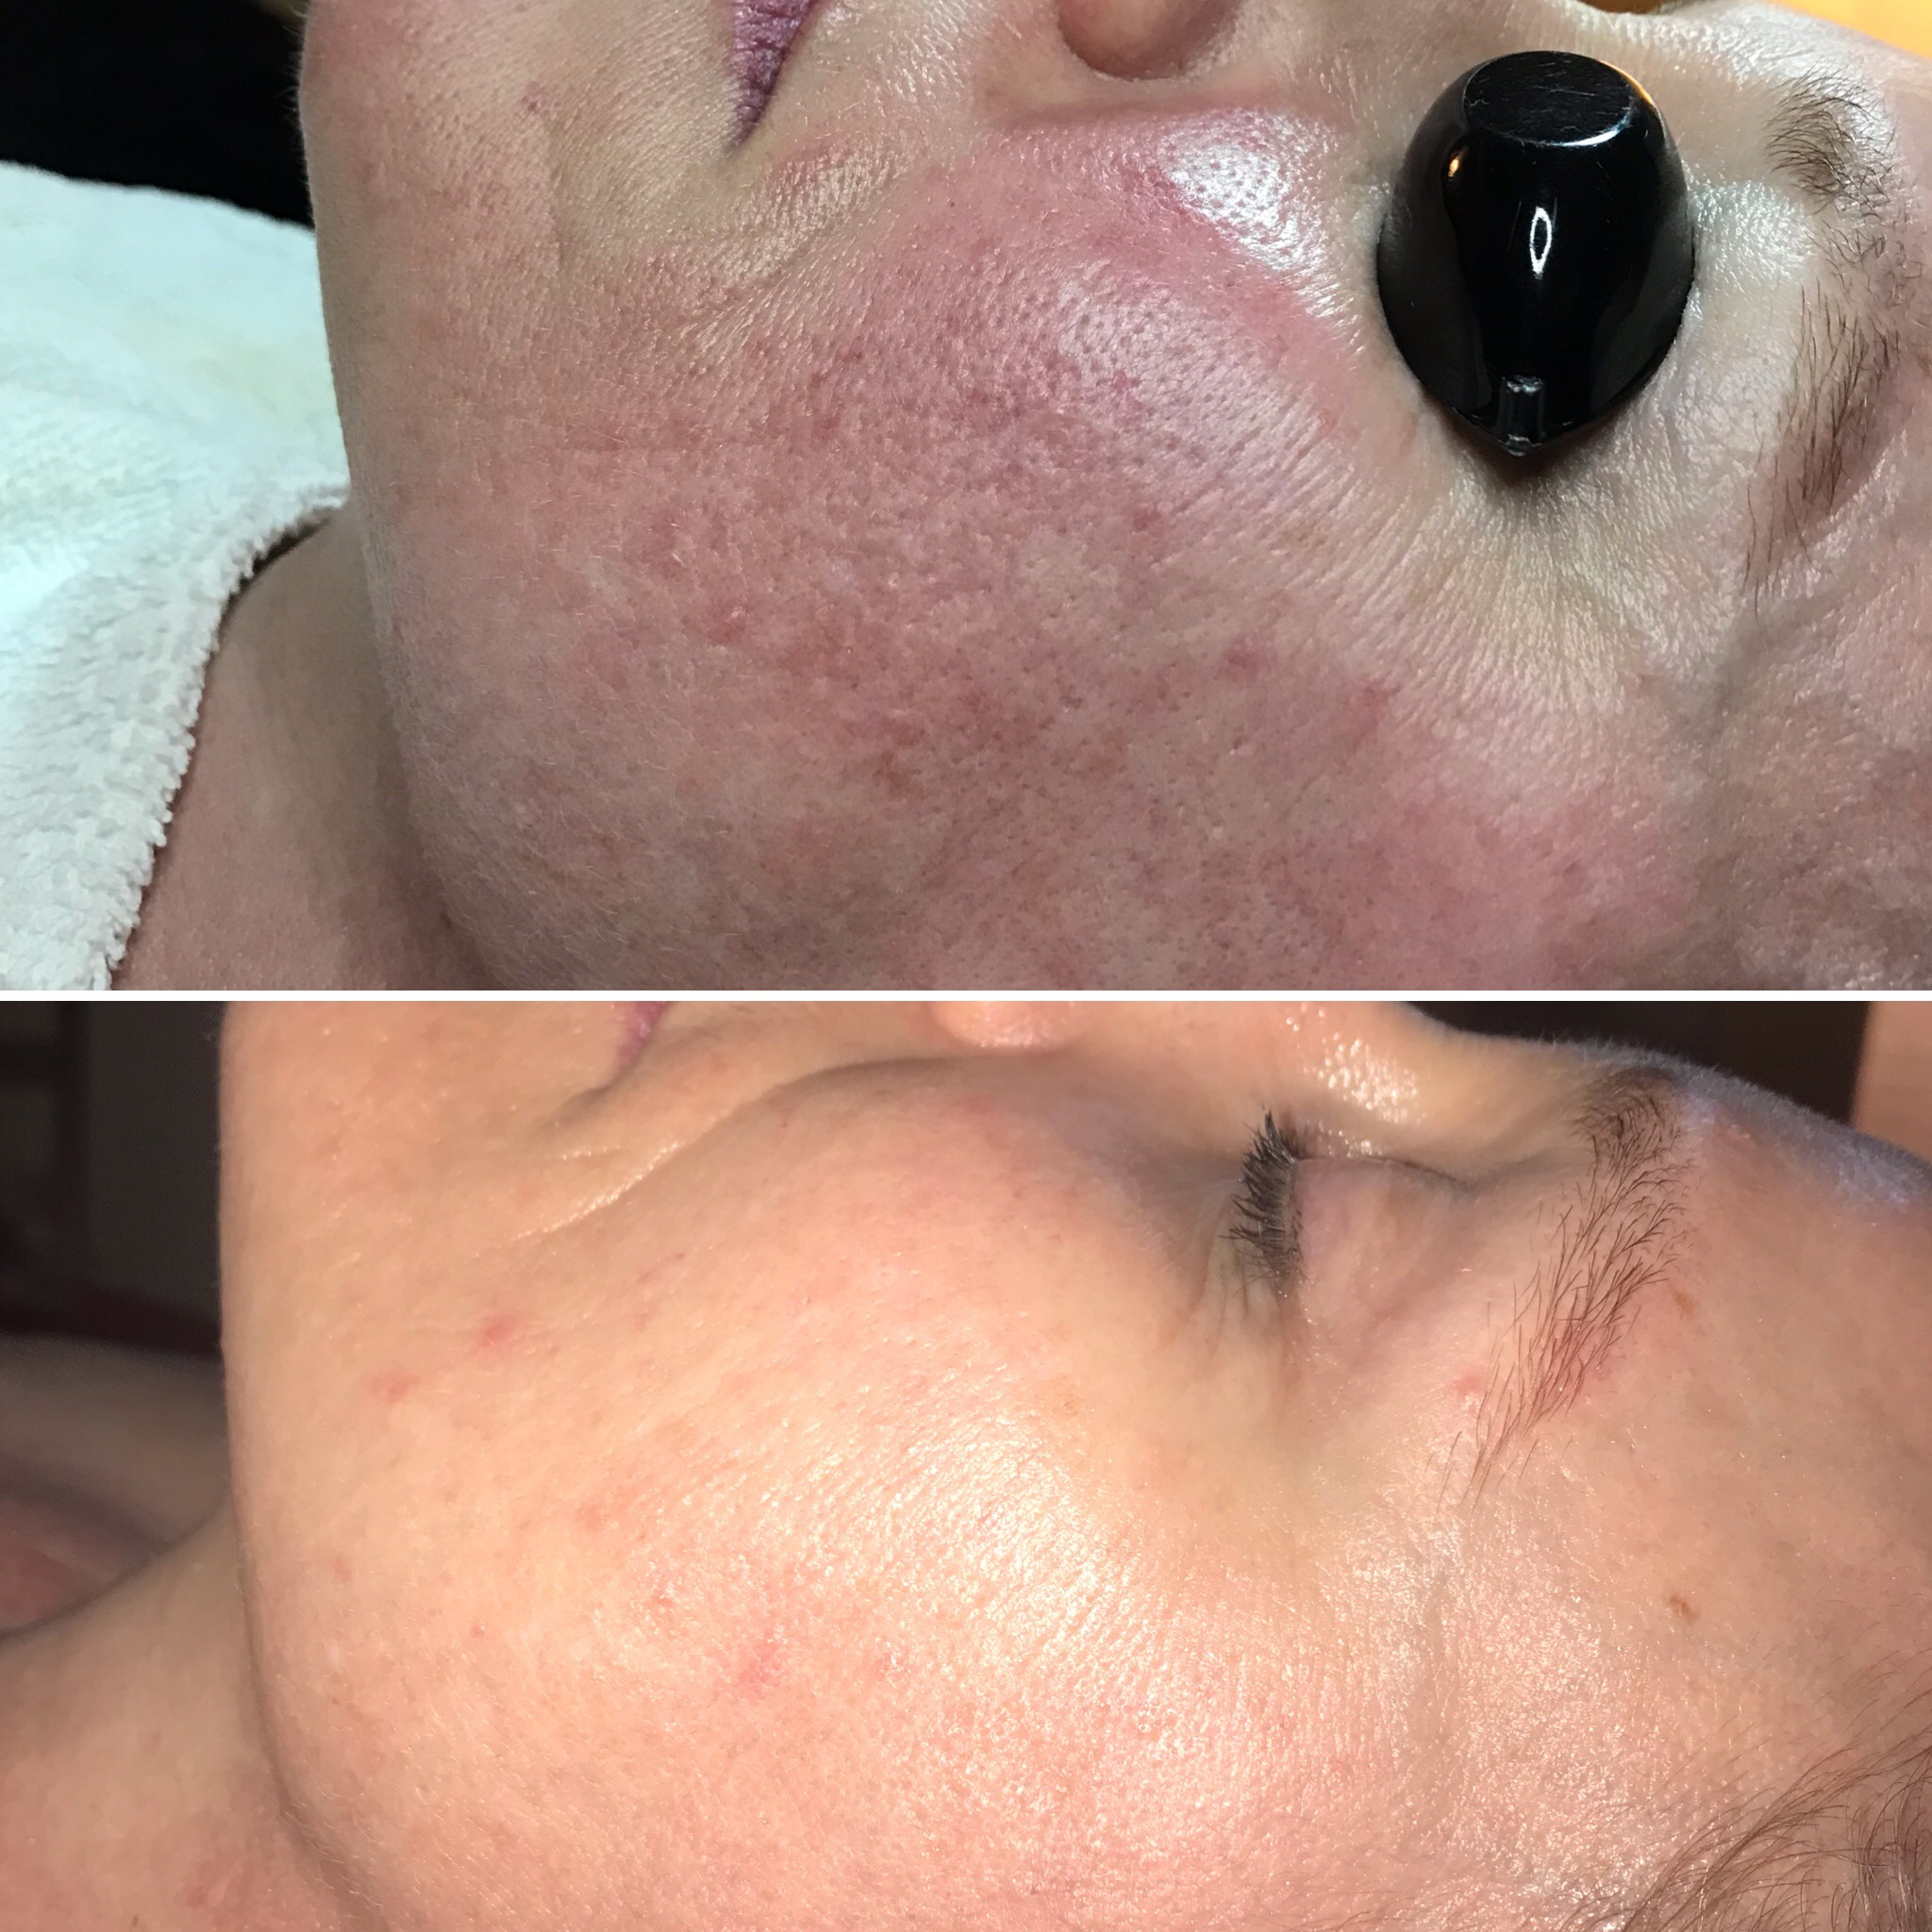 This client had dramatic improvement in only three weeks after one mini-facial and using Roccoco Botanicals homecare.